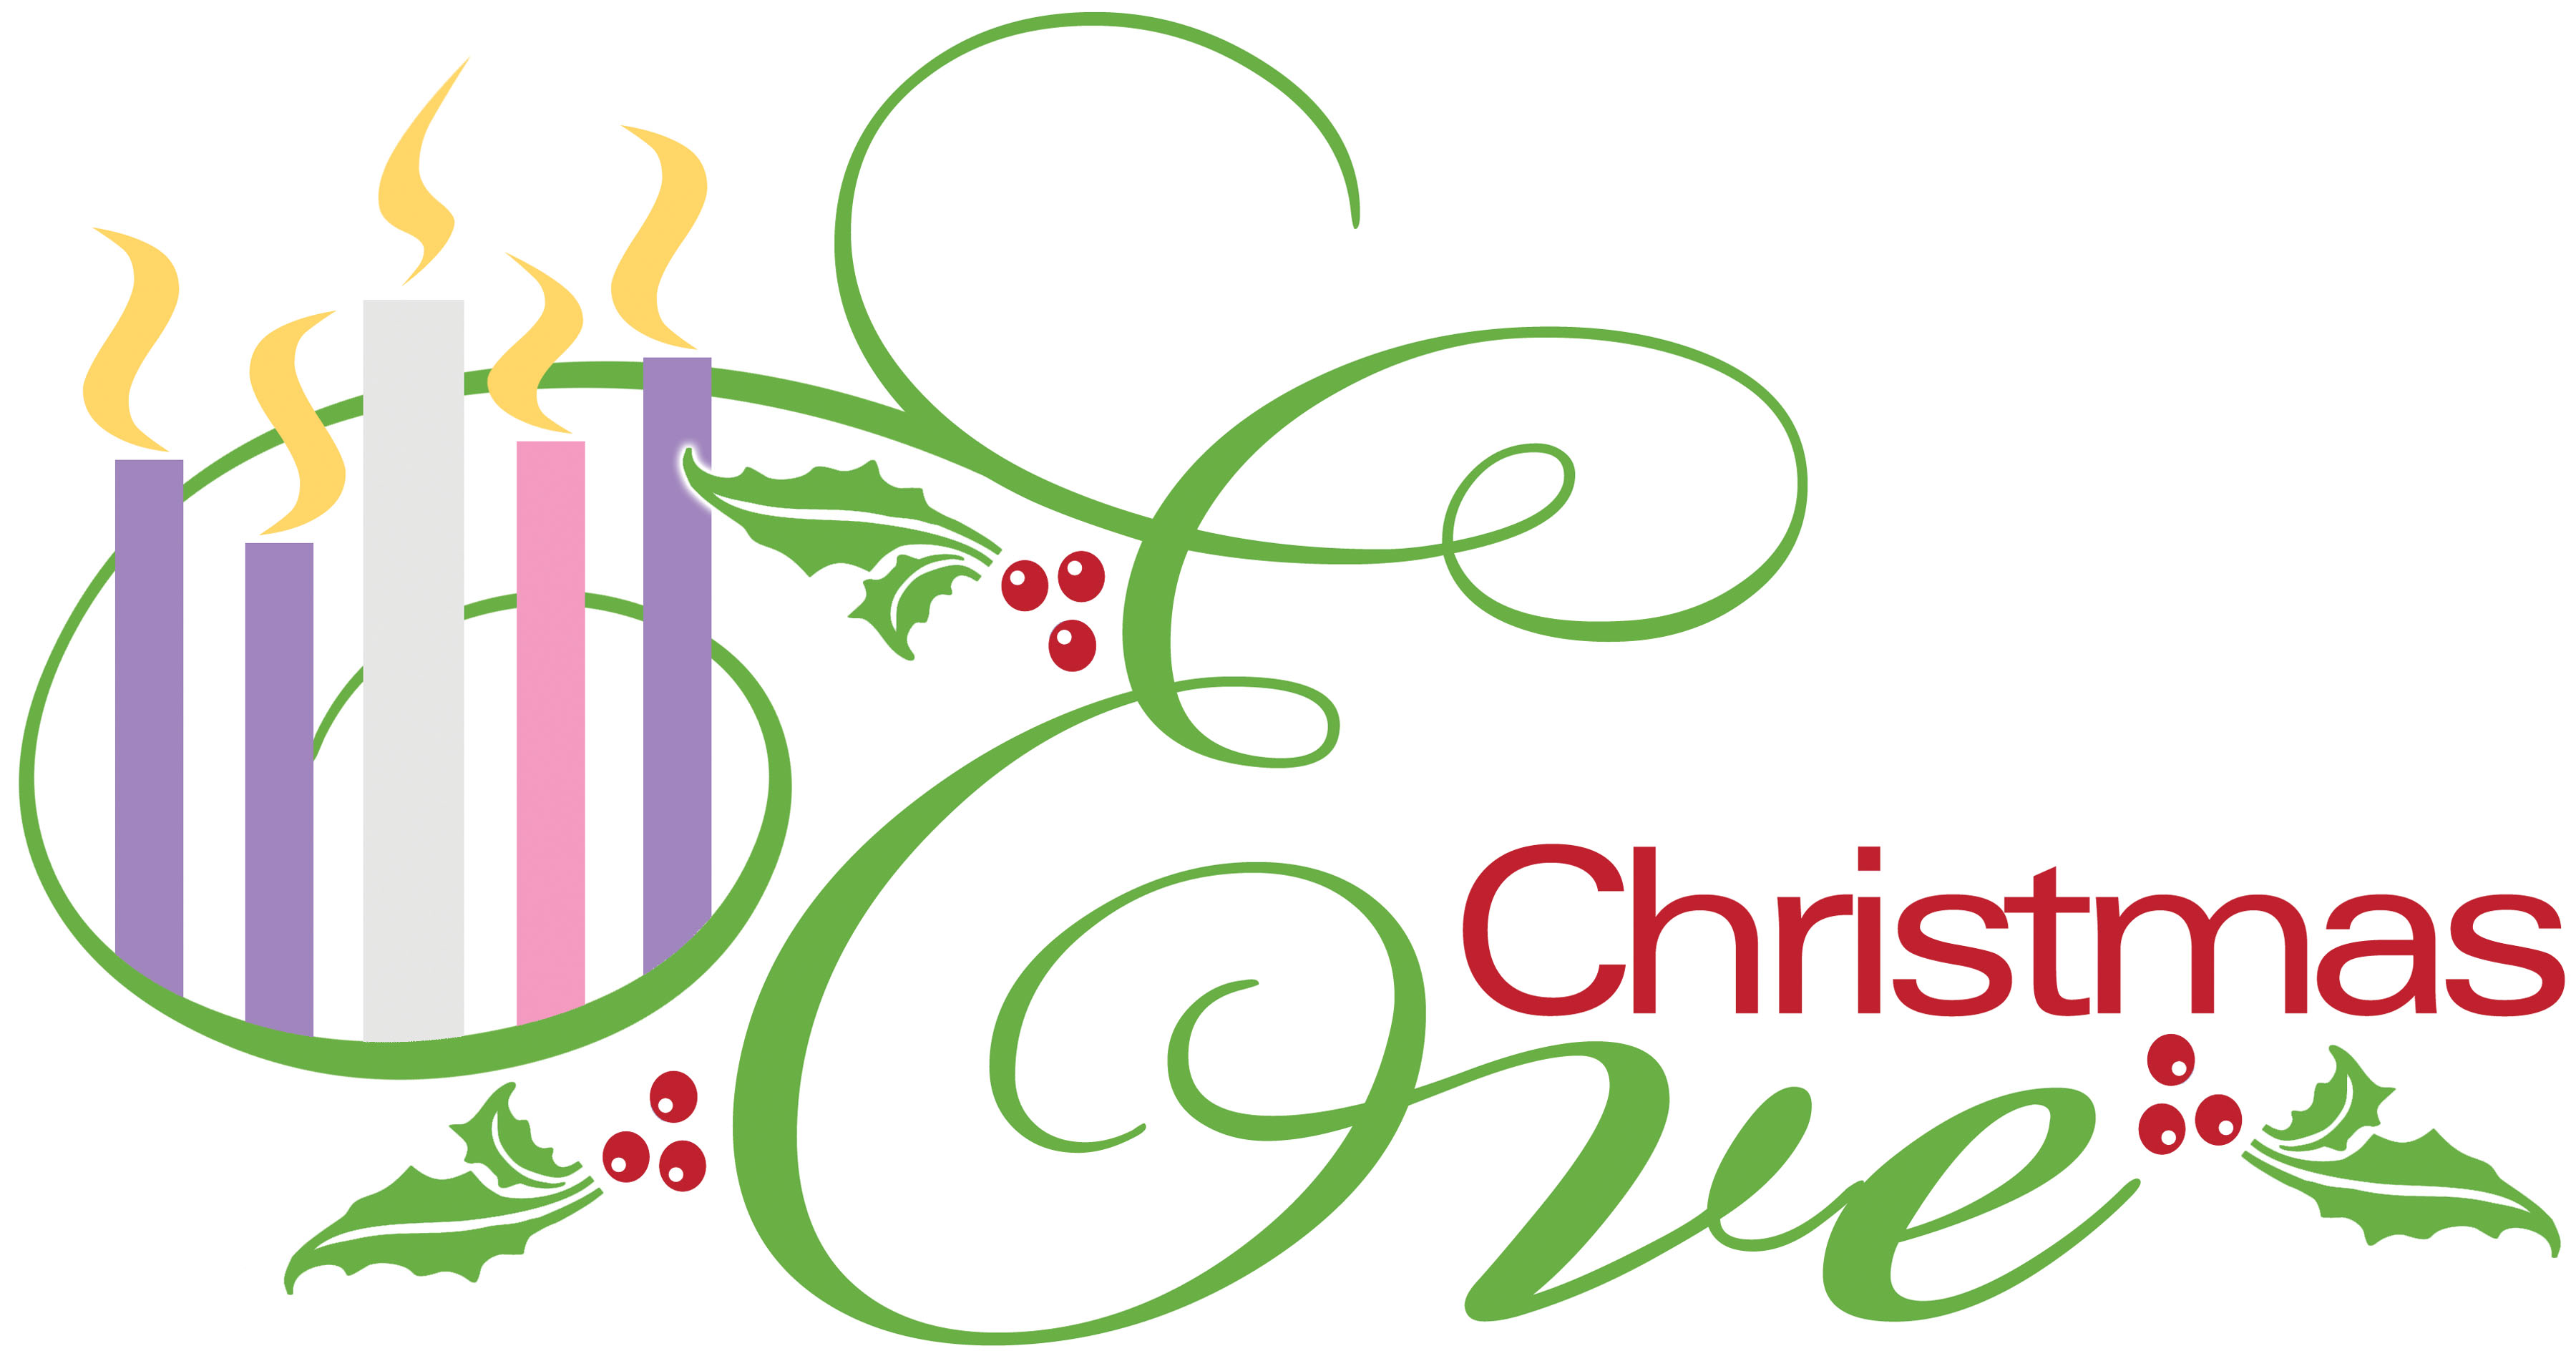 626 Christmas Eve free clipart.